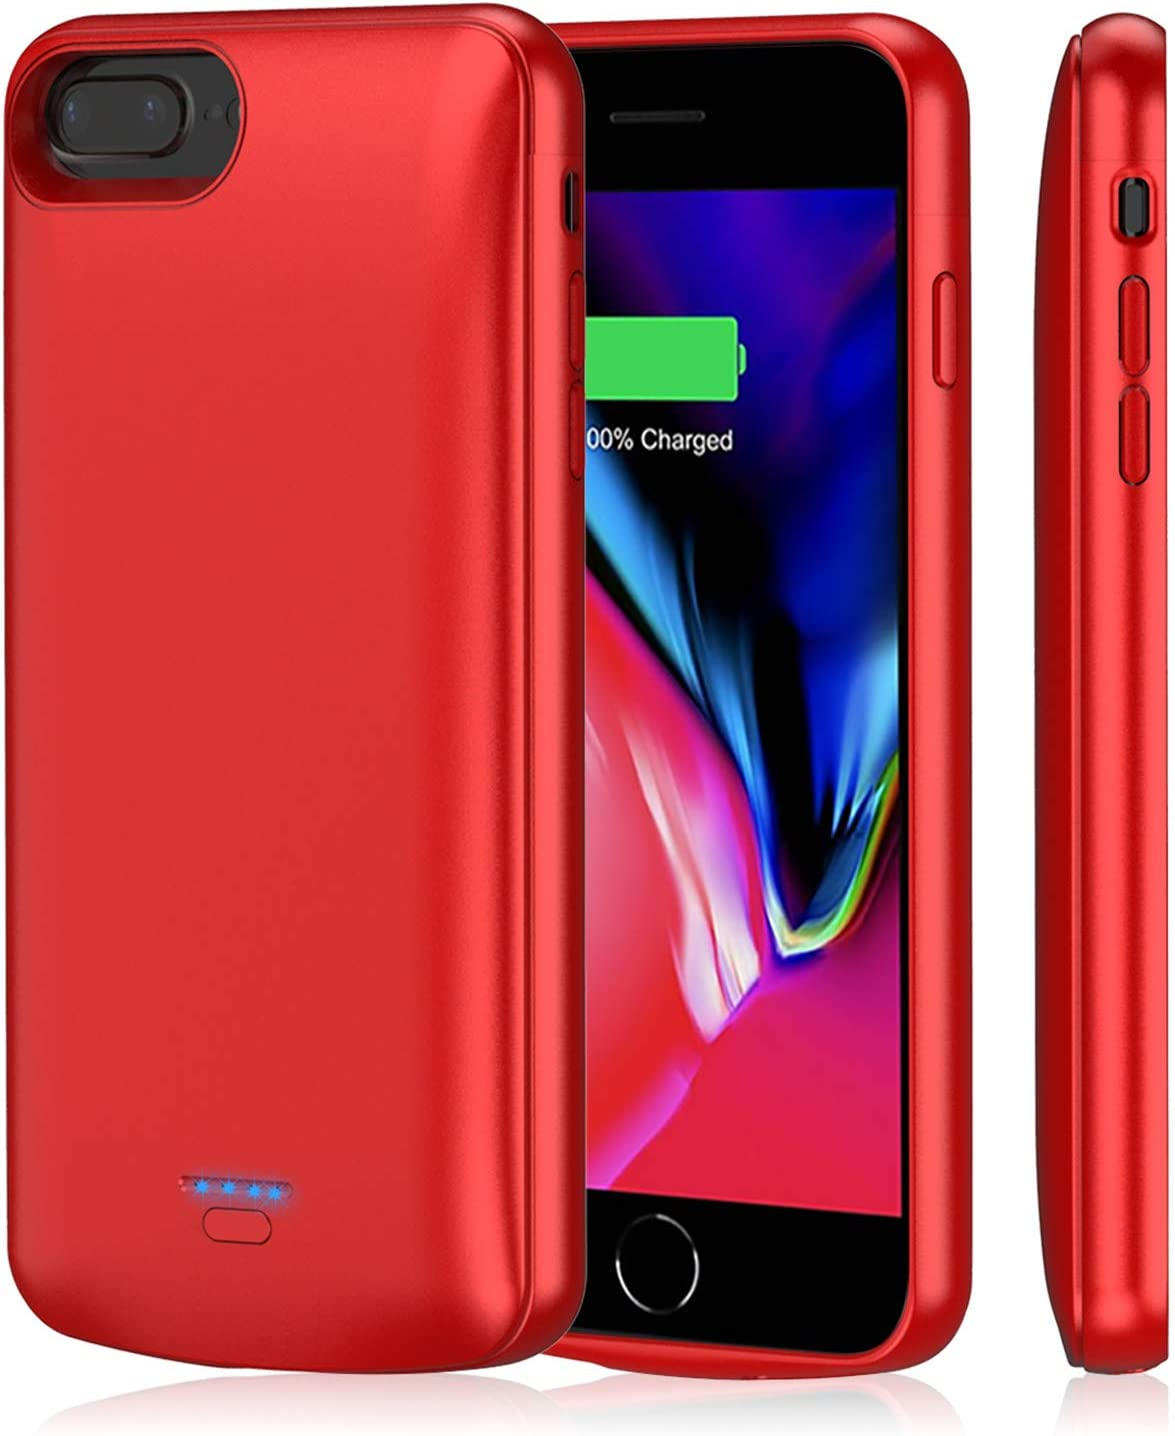 Battery Case for iPhone 8 Plus/7 Plus, TAYUZH 5500 mAh Magnetic Portable Charging Case for iPhone 8 Plus/7 Plus/6 Plus(5.5 Inch) Rechargeable Extended Charger Case Compatible Lightning Headphones- Red